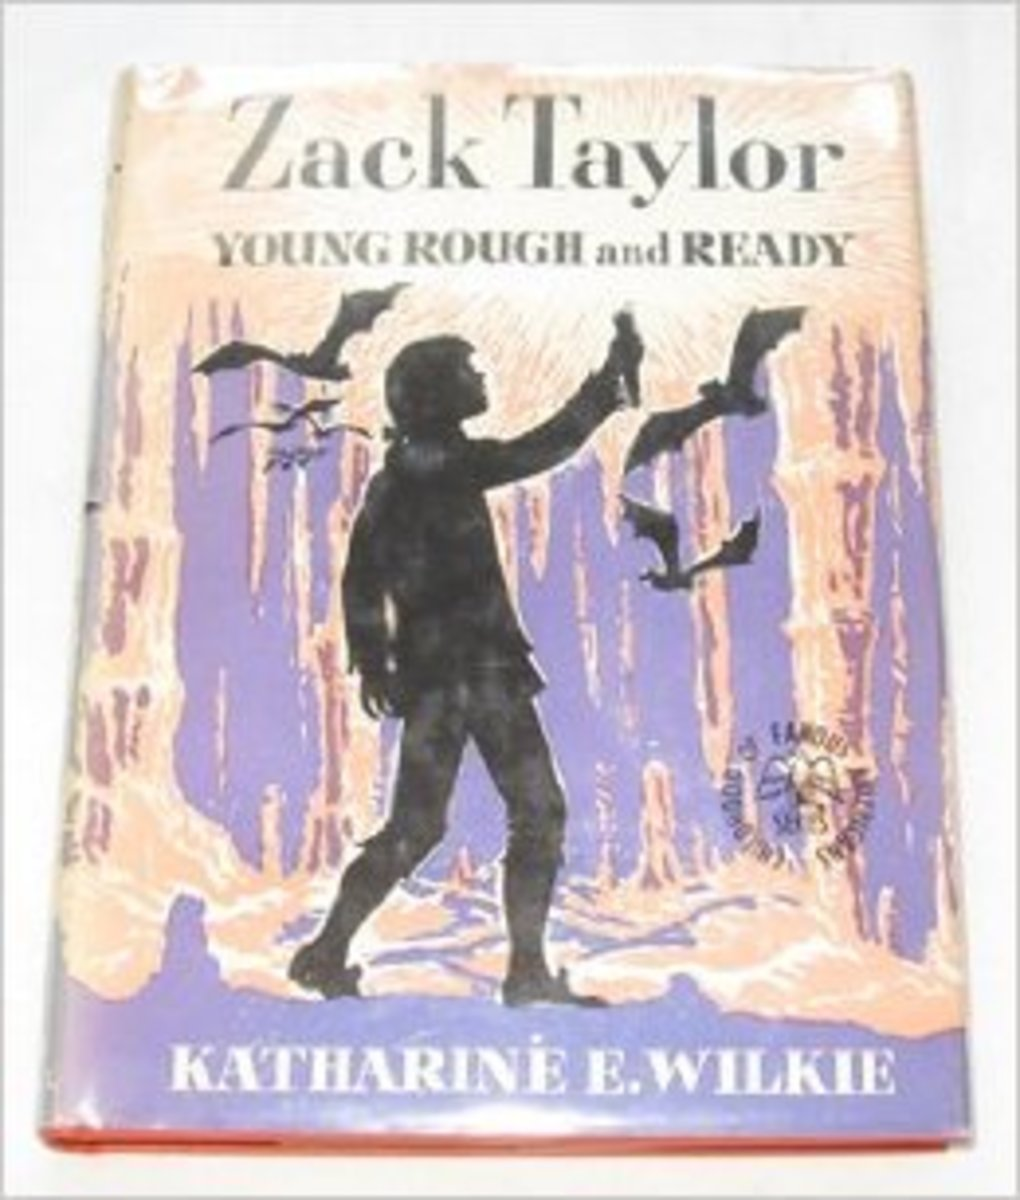 Zack Taylor: Young Rough and Ready (Childhood of famous Americans) by Katharine Elliott Wilkie - All images are from amazon.com.